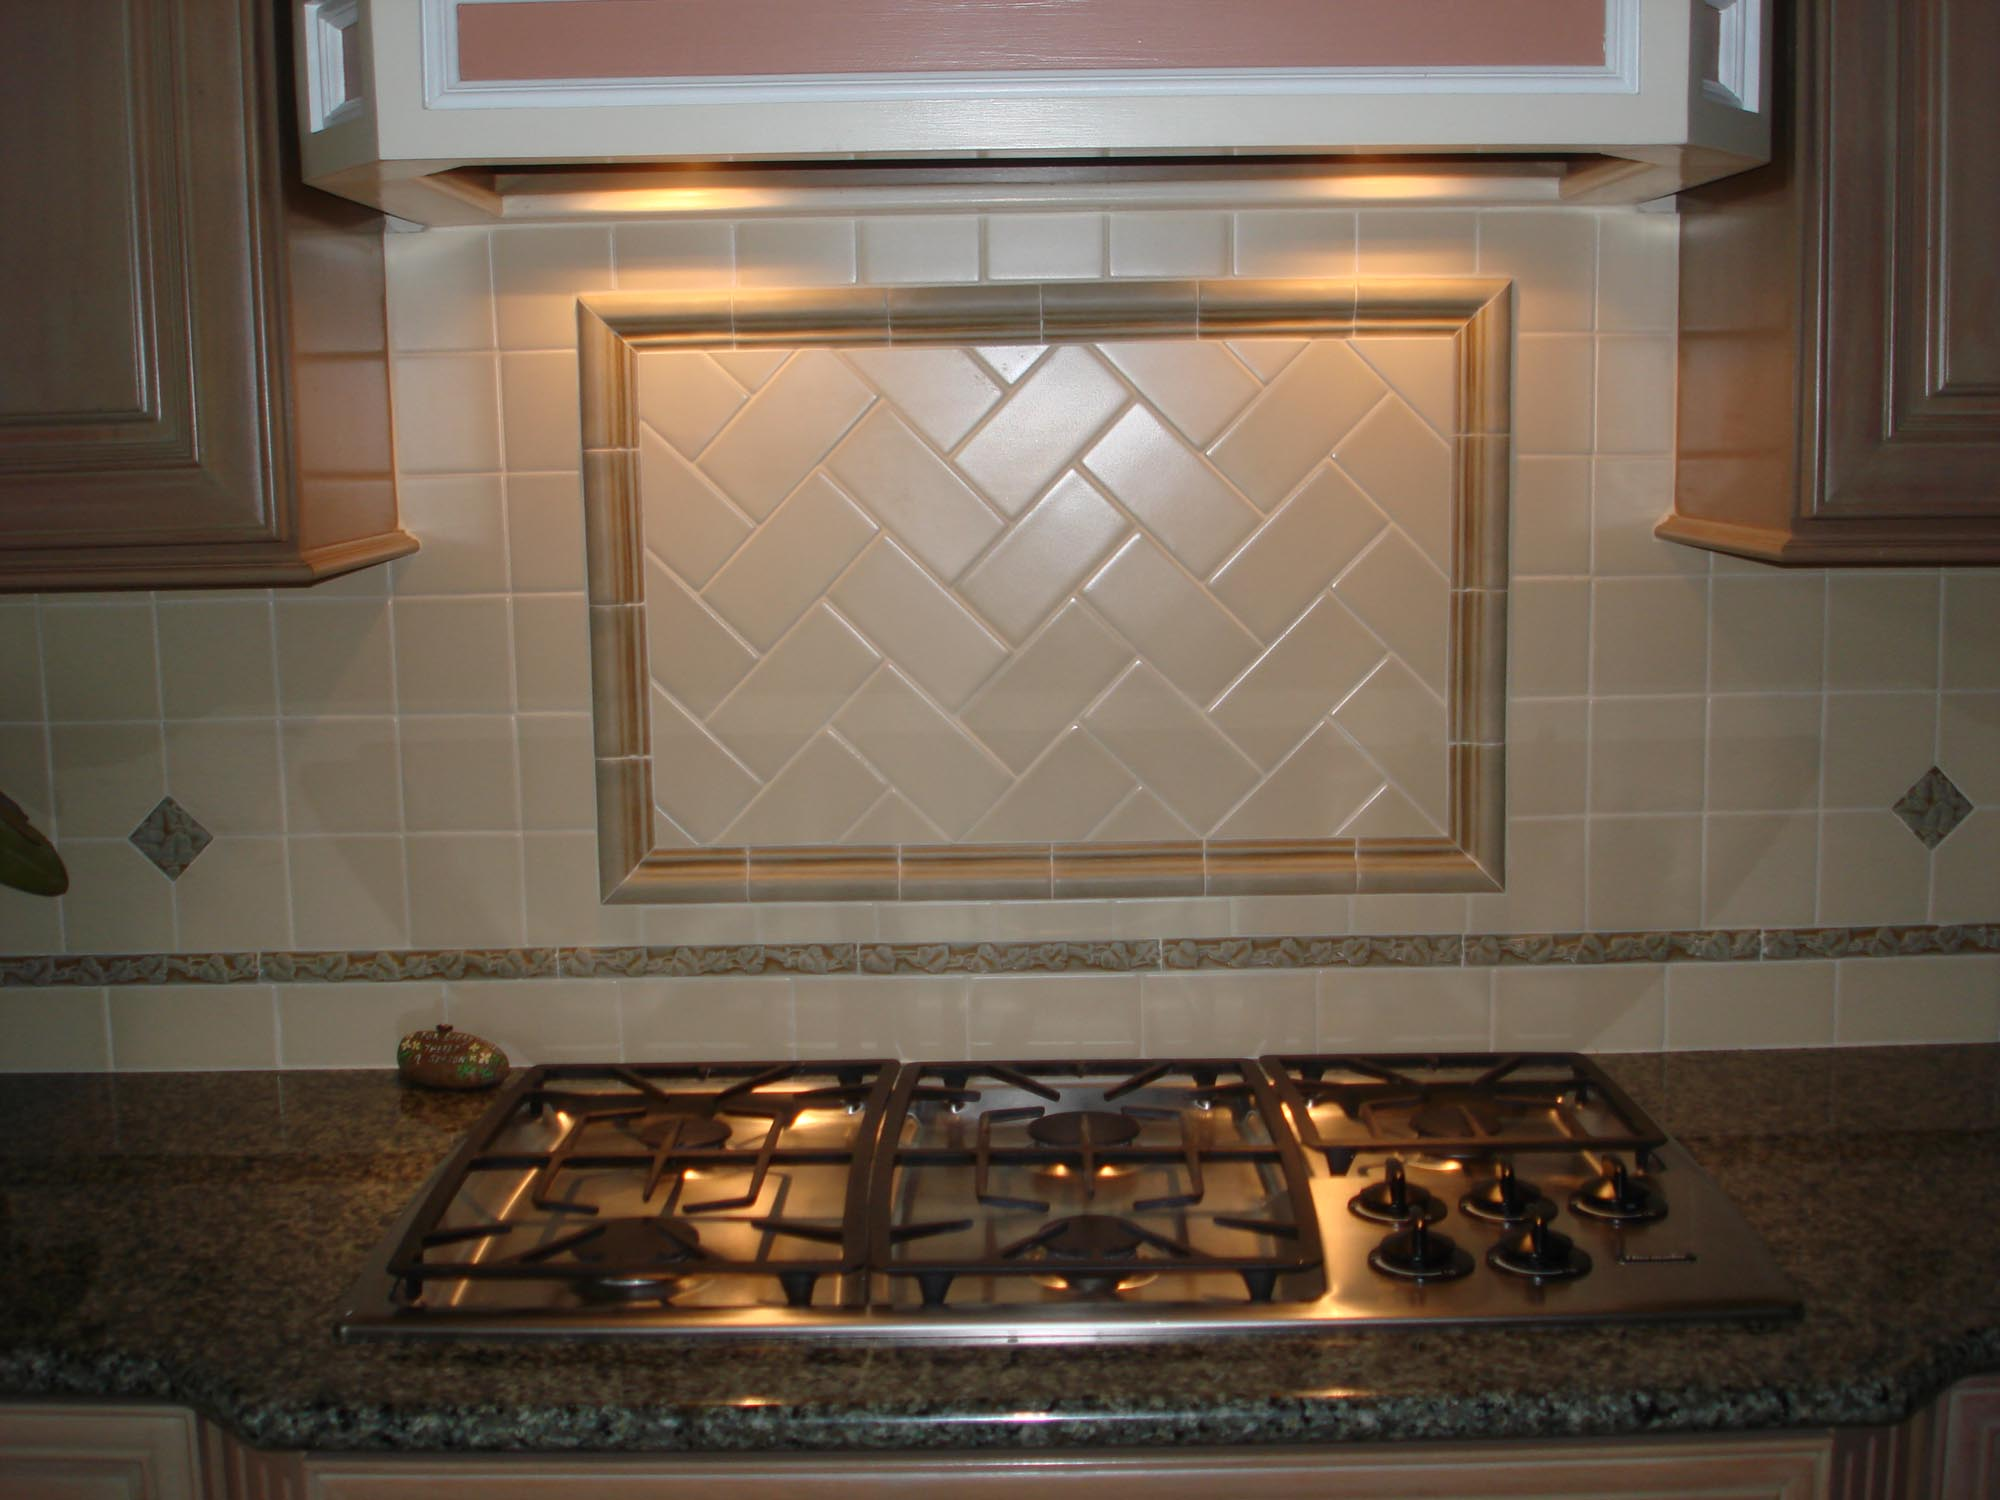 ceramic tile backsplash submited images backsplash tiles for kitchen home design ideas